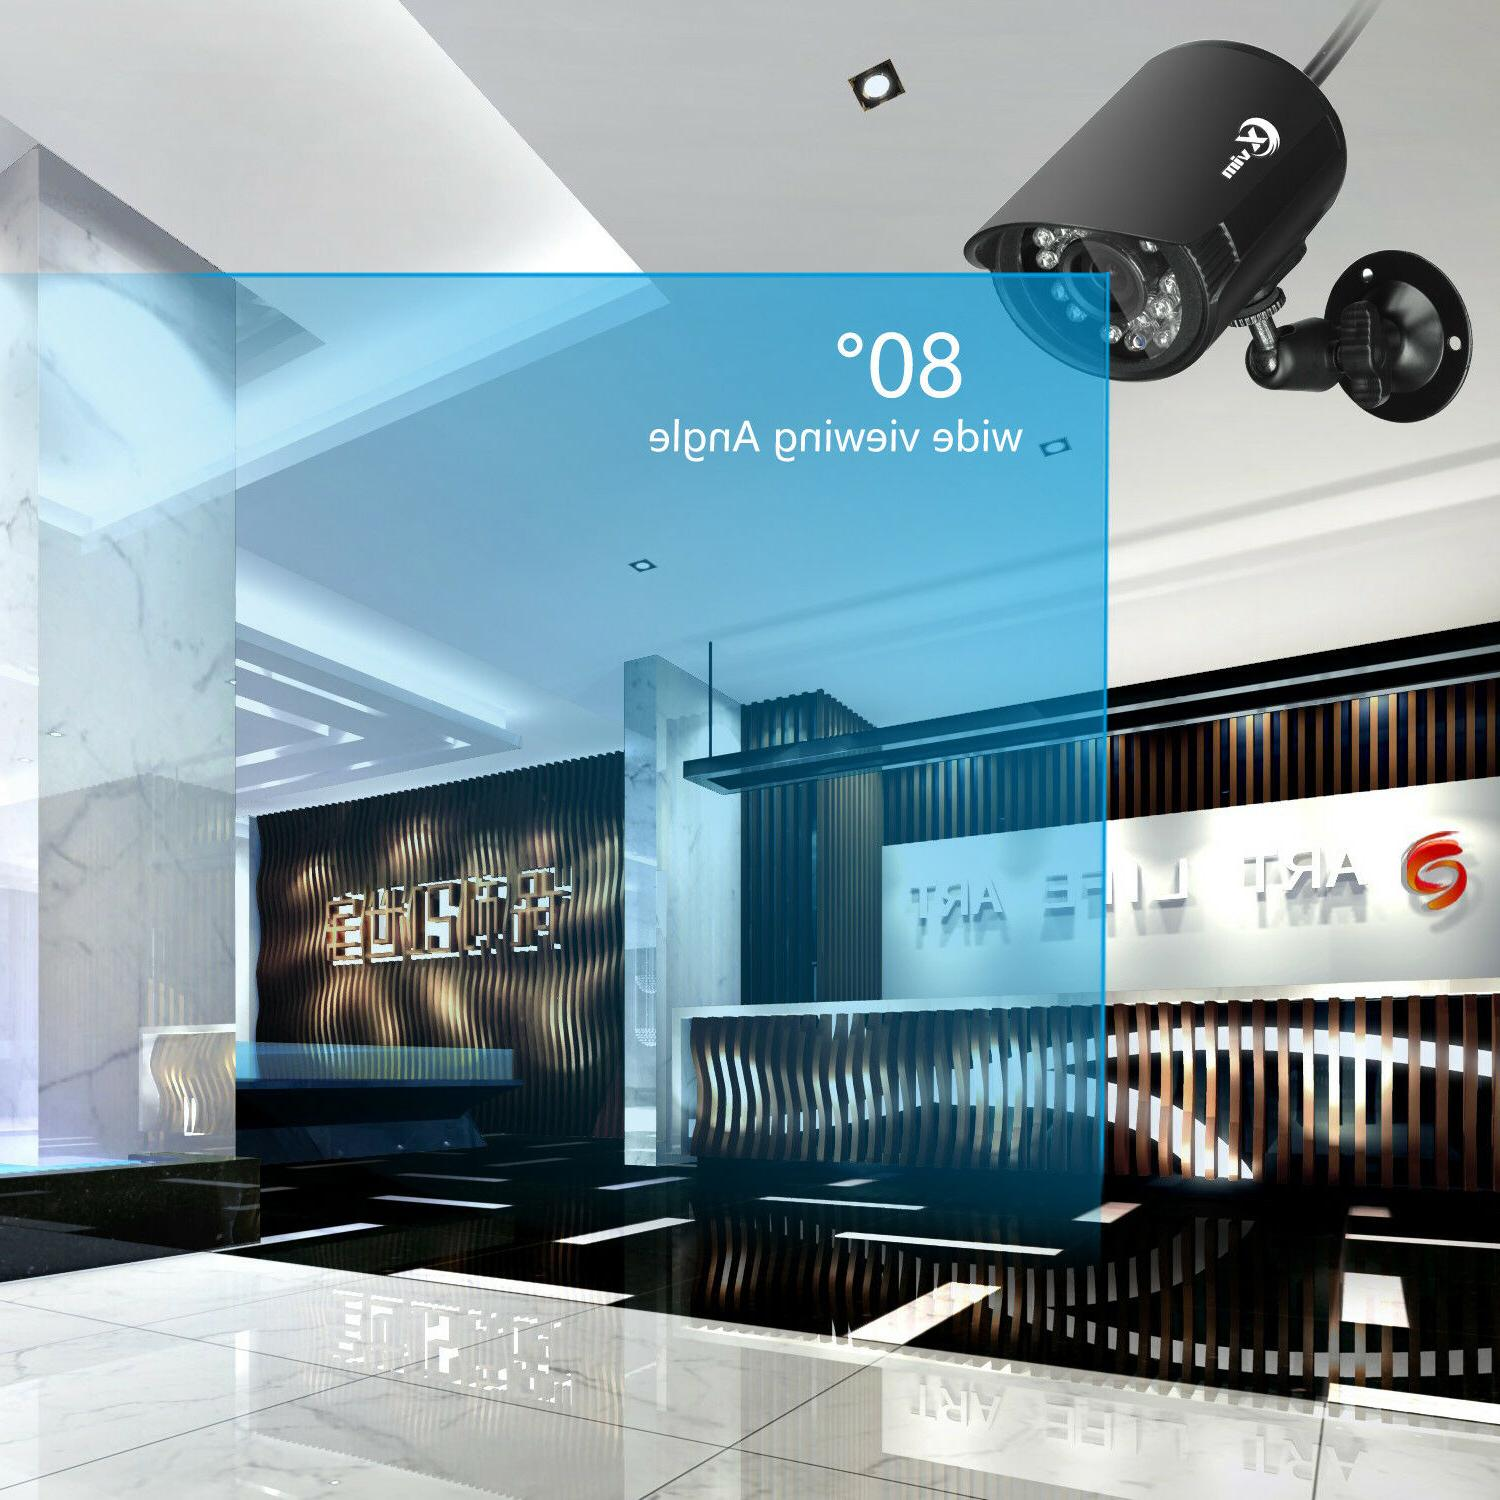 XVIM HDMI CCTV DVR Outdoor Camera